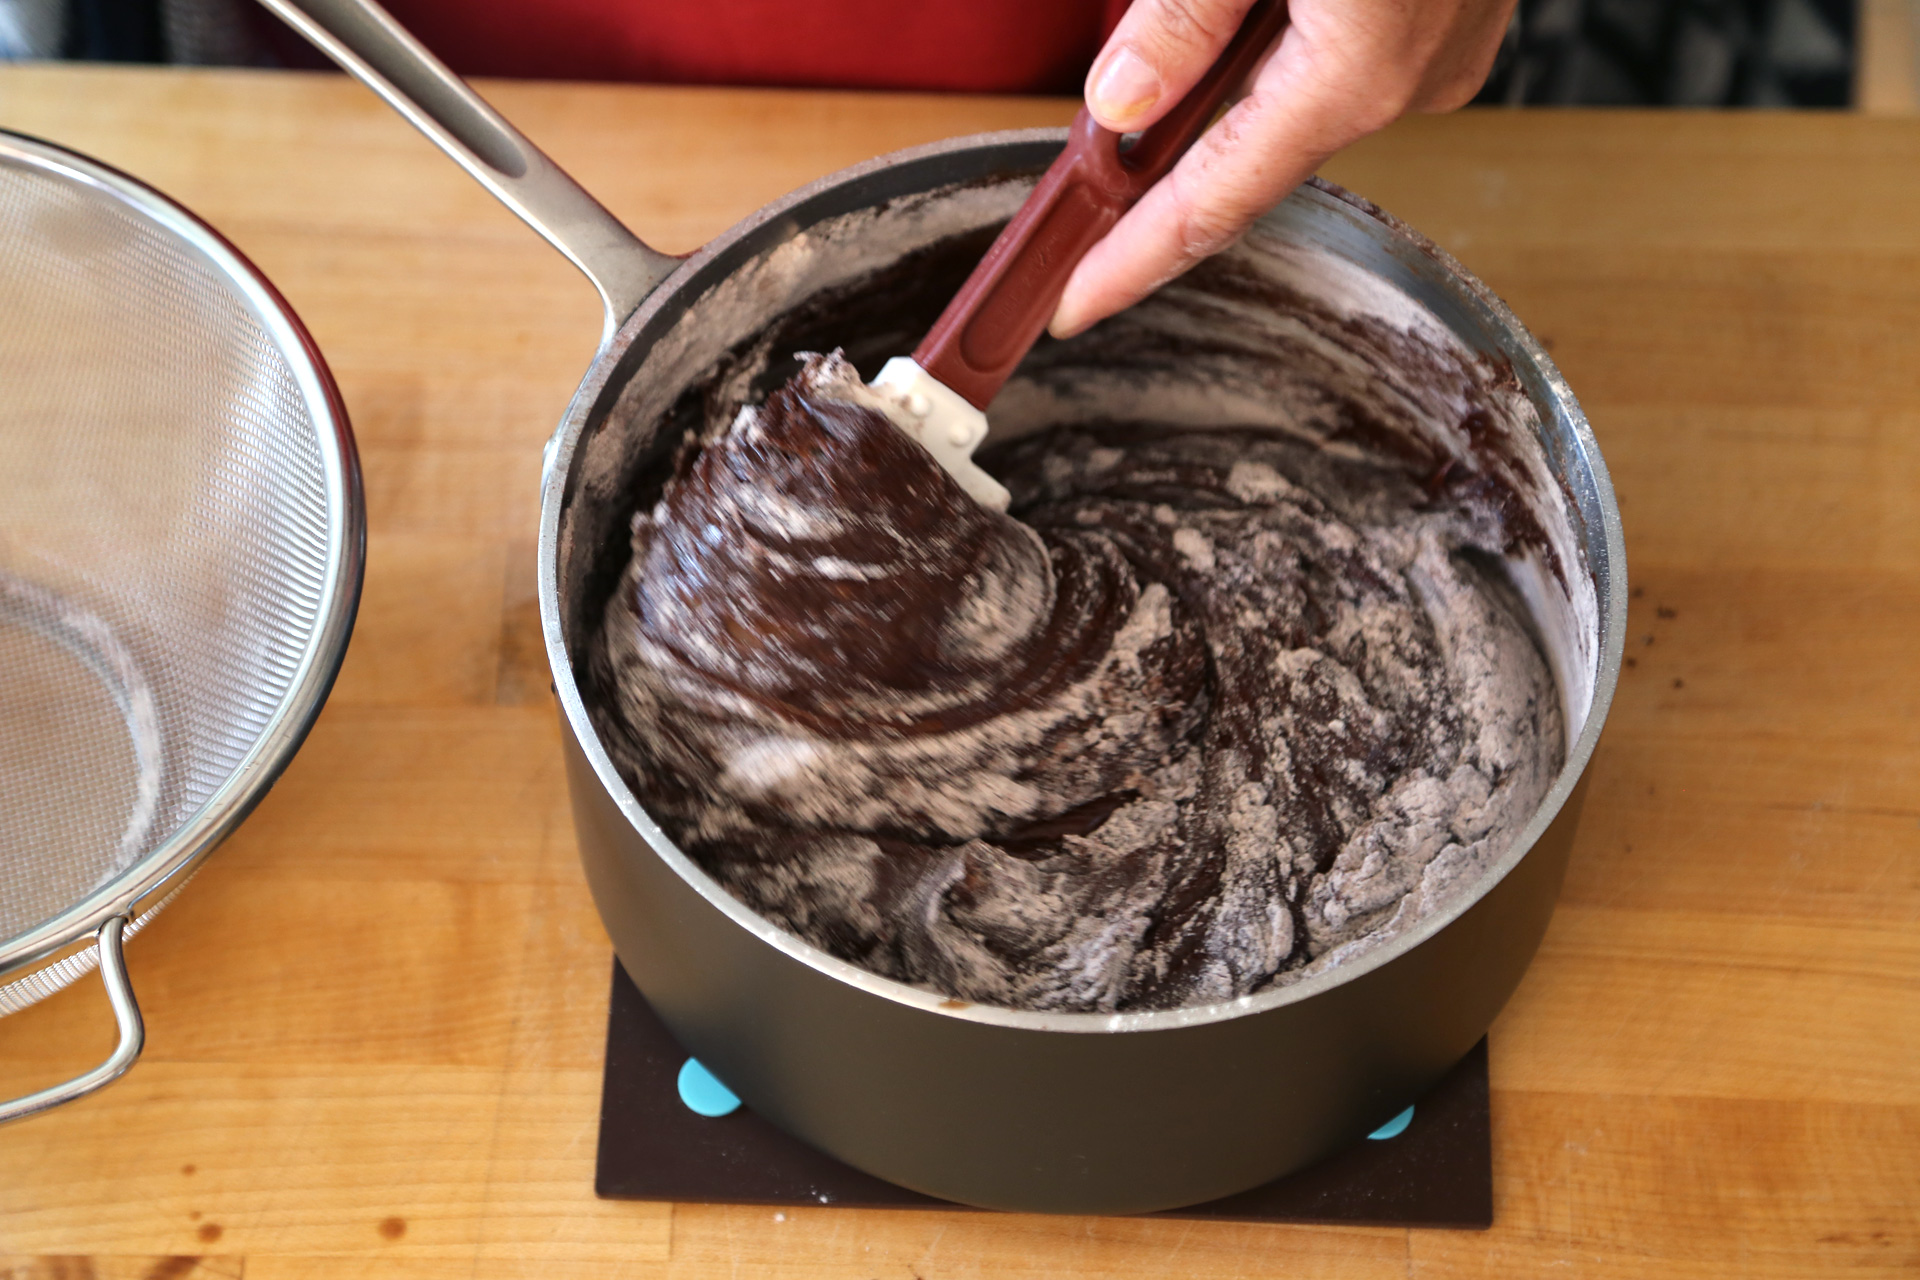 Using a rubber spatula, stir in the flour and cocoa until blended.